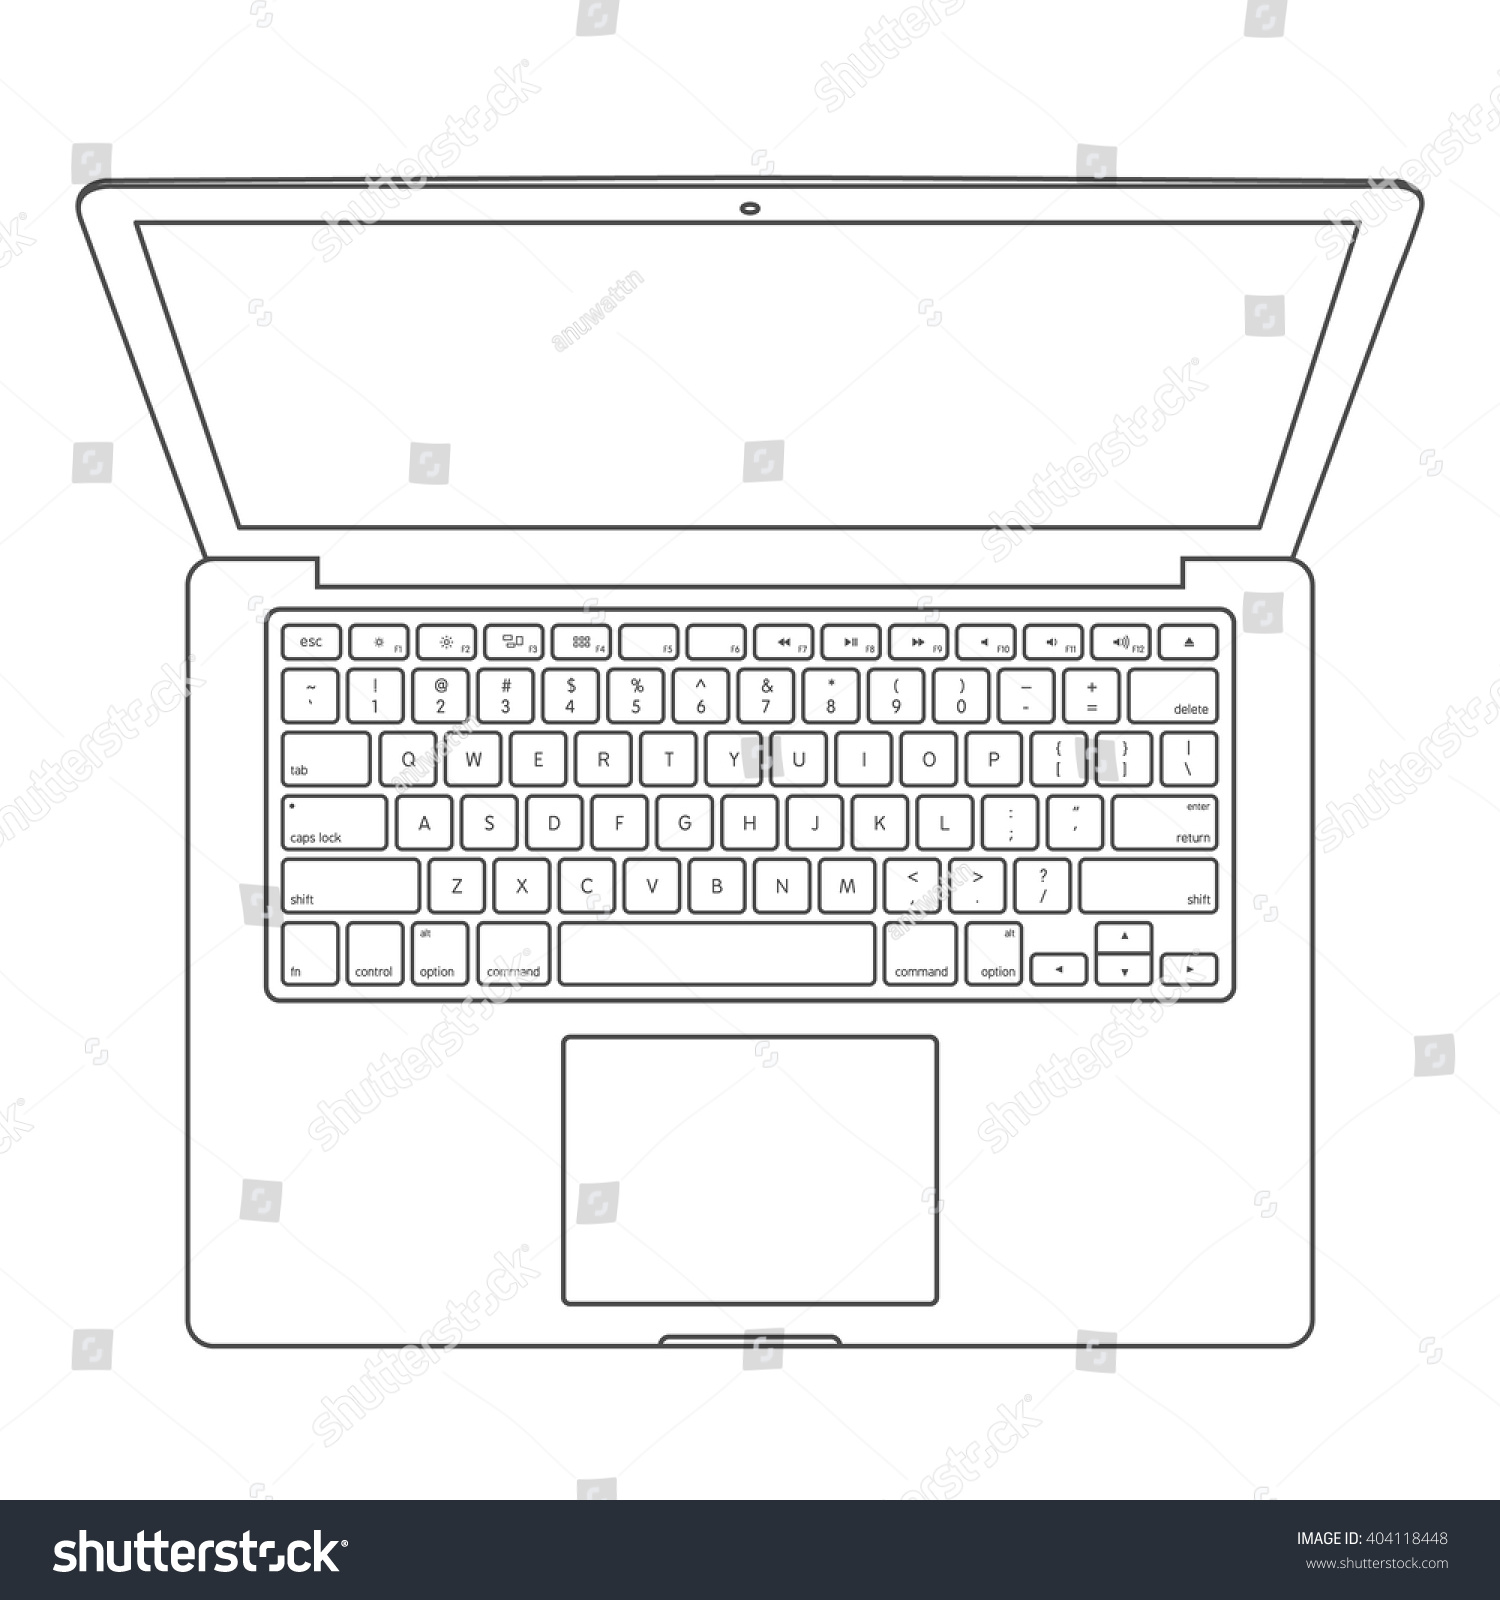 Free Worksheet Blank Computer Keyboard Worksheet keyboard template dvorak layout layouts top view of blank laptop computer with mono